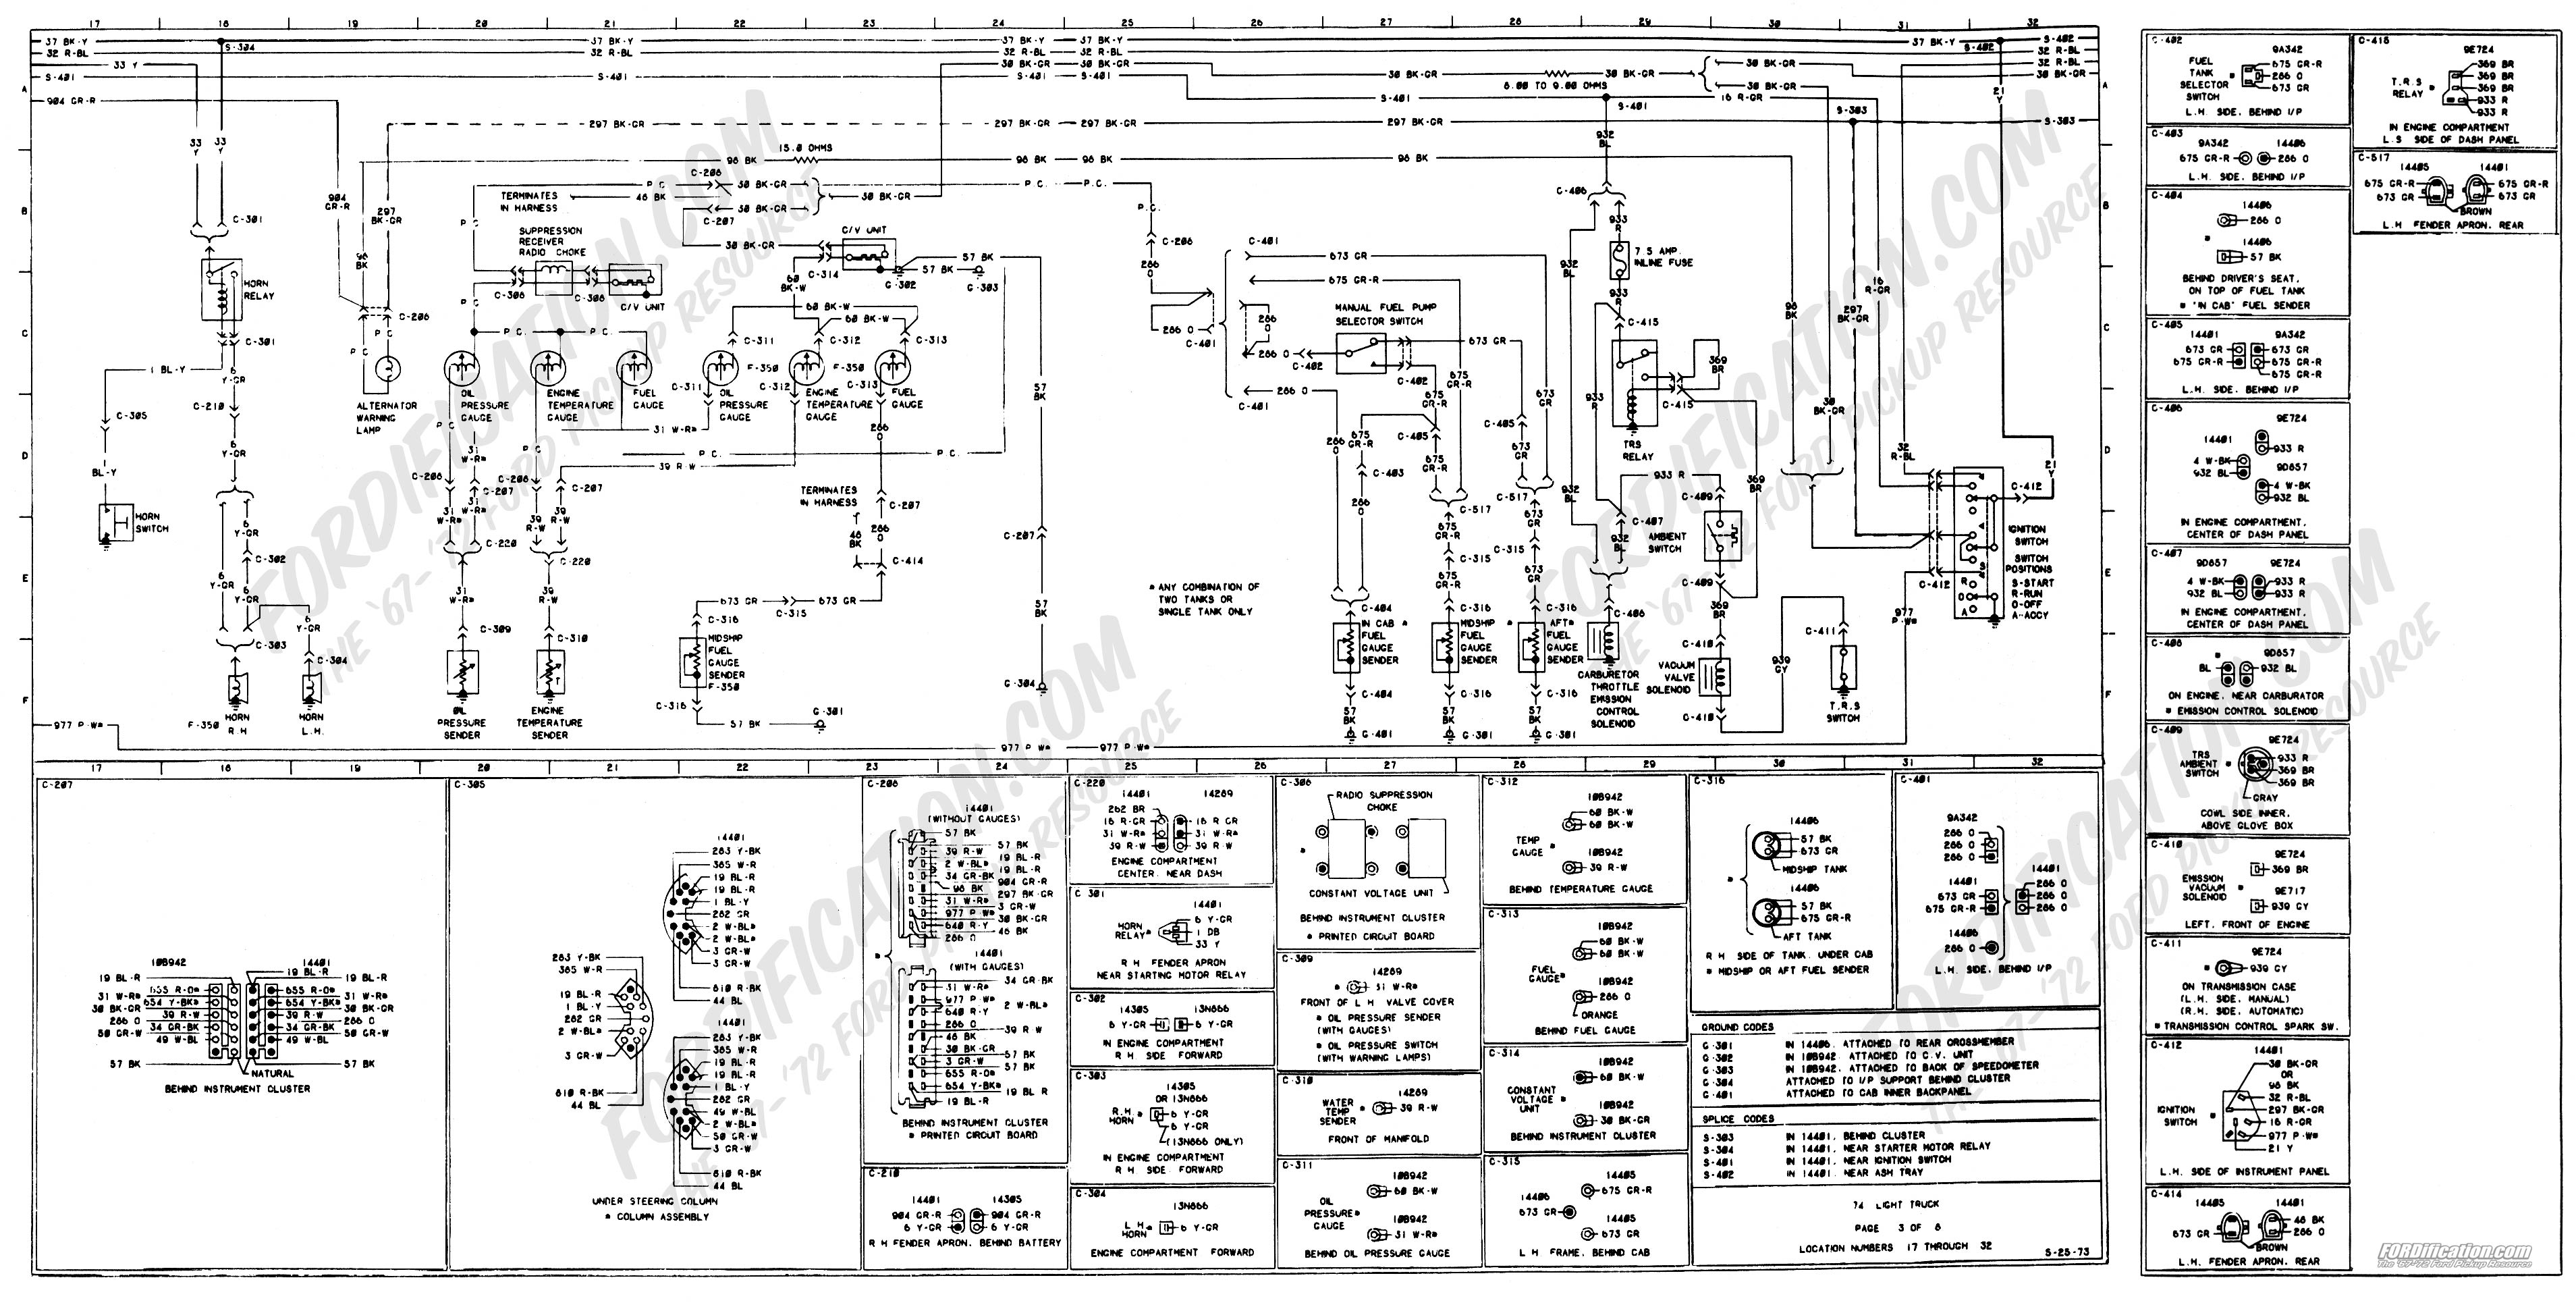 1979 F 100 Wiring Diagrams Reveolution Of Diagram Vw Beetle 1971 Rd 1973 Ford Truck Schematics Fordification Net Rh 1969 F100